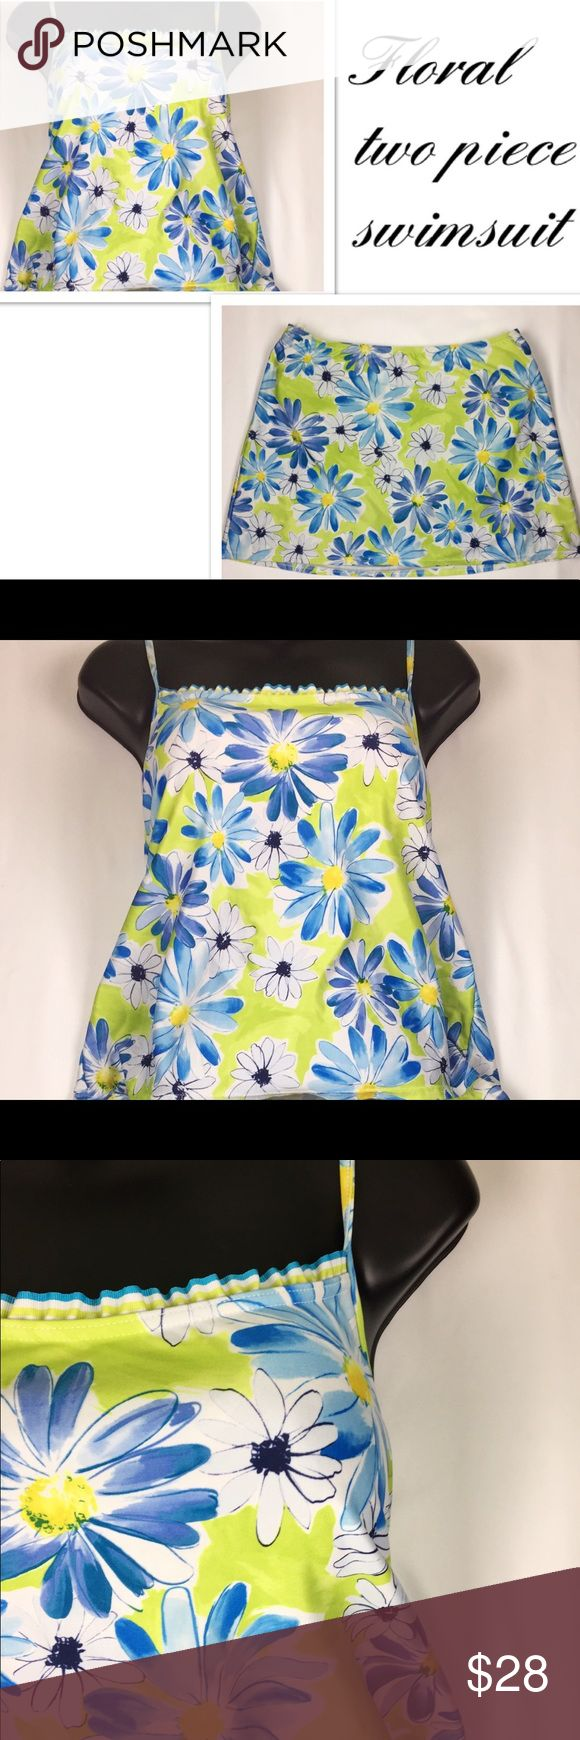 Floral flower tankini style two piece swimsuit Two piece tankini style floral flower swimsuit size 14 may run a little smaller (measurements available upon request) in perfect condition. No rips, stains, or tears. Smoke free home and fast shipping Swim